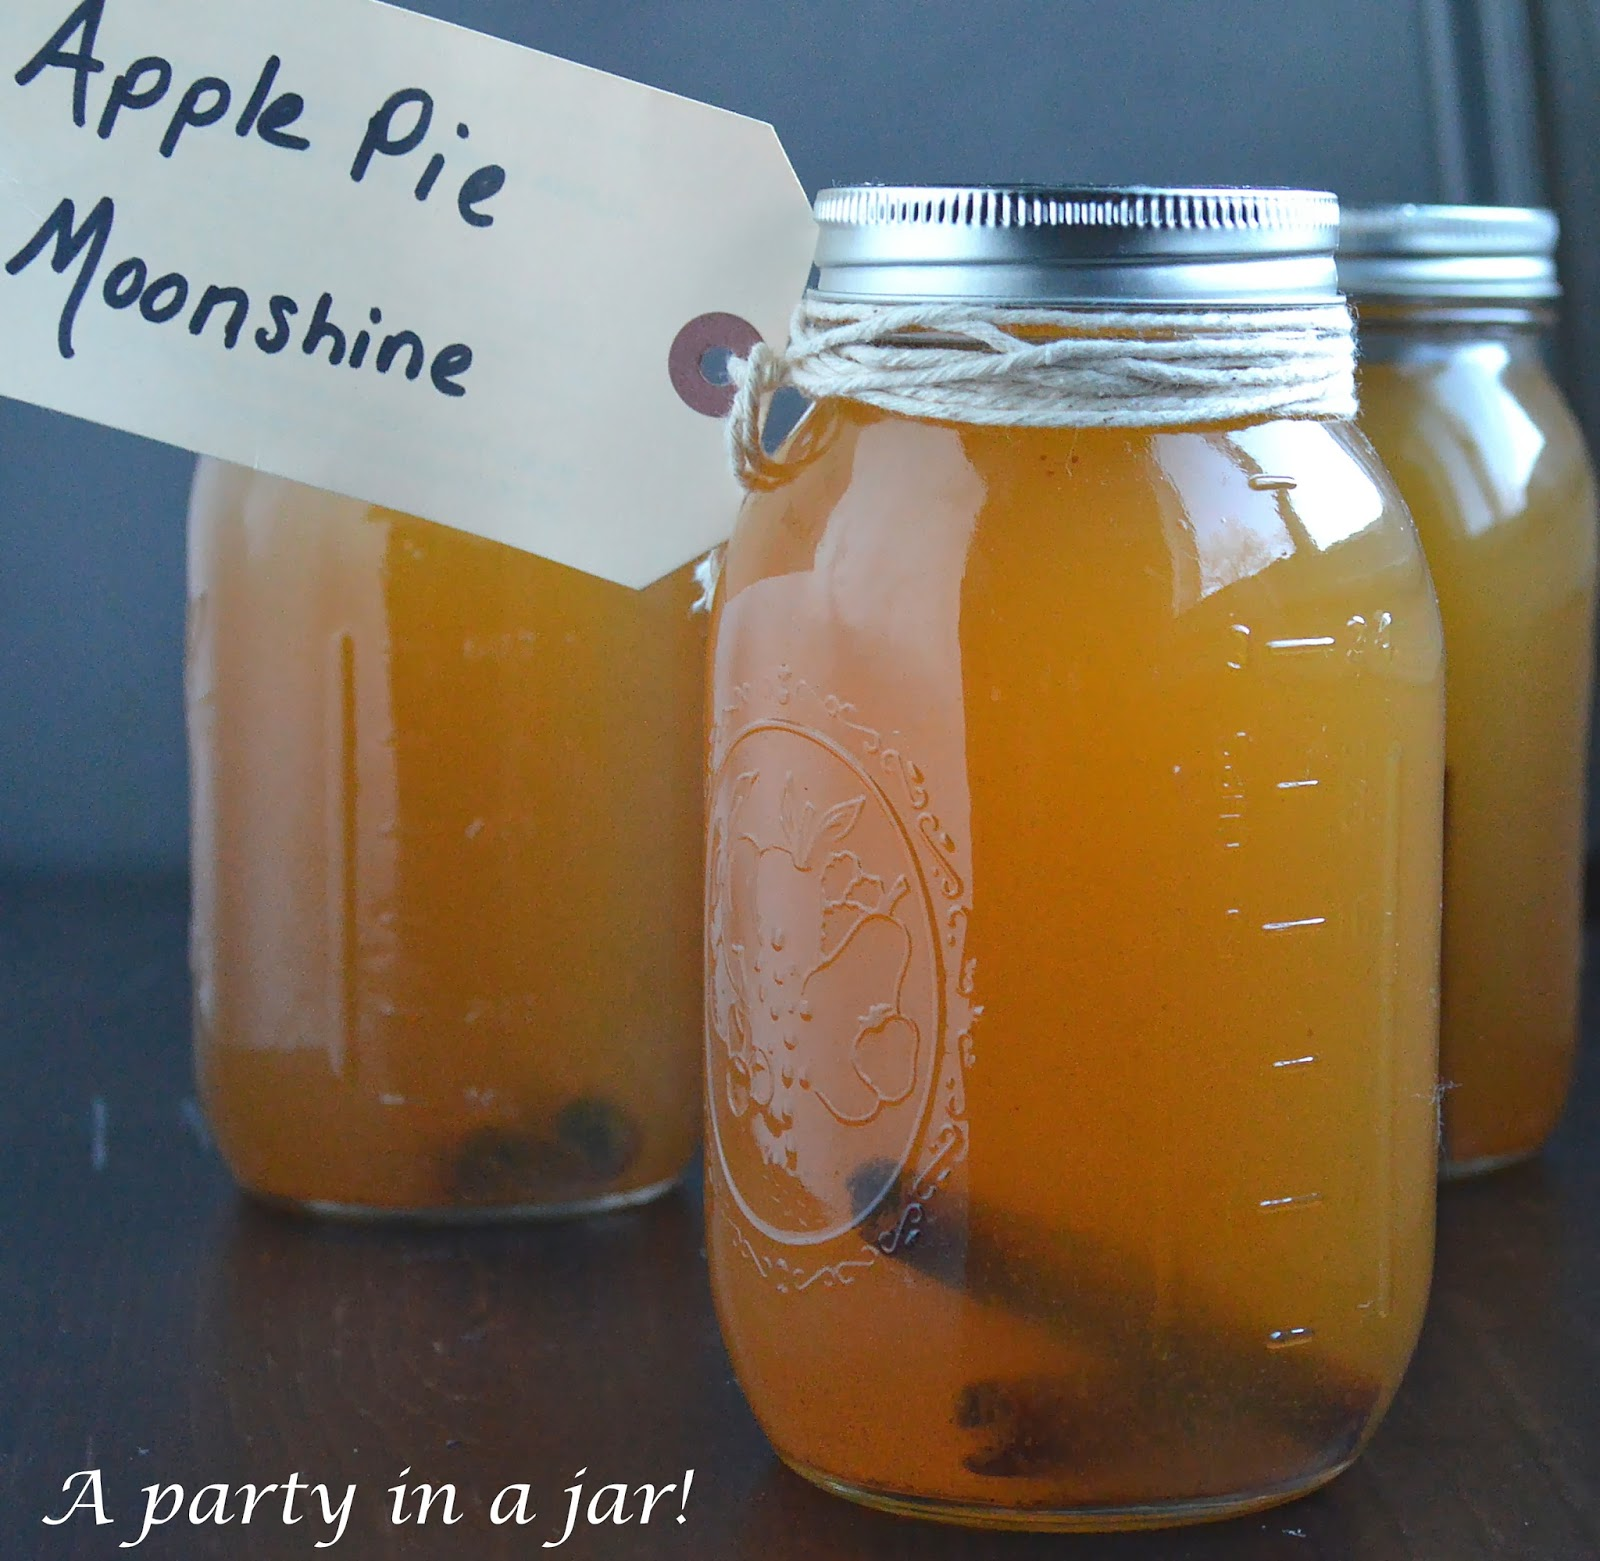 The Very Best Recipe For Homemade Apple Pie Moonshine